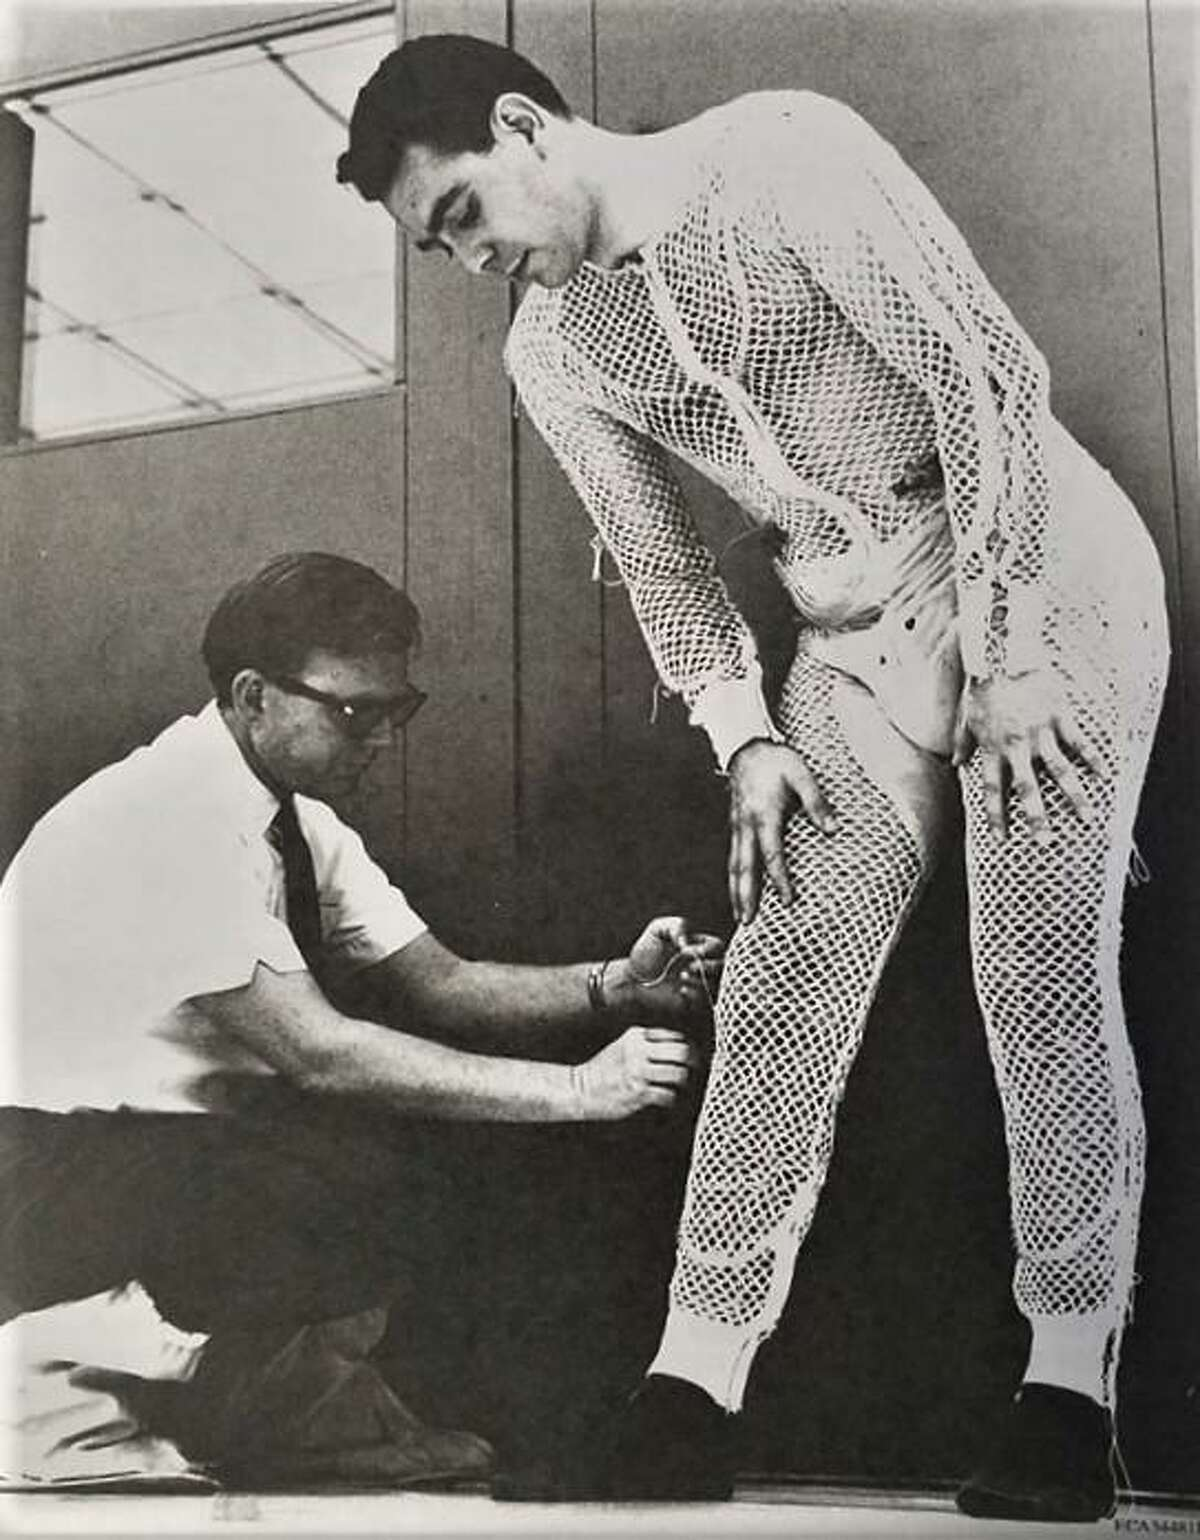 This 1964 photo from Collins Aerospace, a unit of United Technologies that includes the former Hamilton Standard business, shows an early prototype of the liquid cooling garment that Hamilton invented in Windsor Locks to help prevent astronauts from overheating inside the space suit.